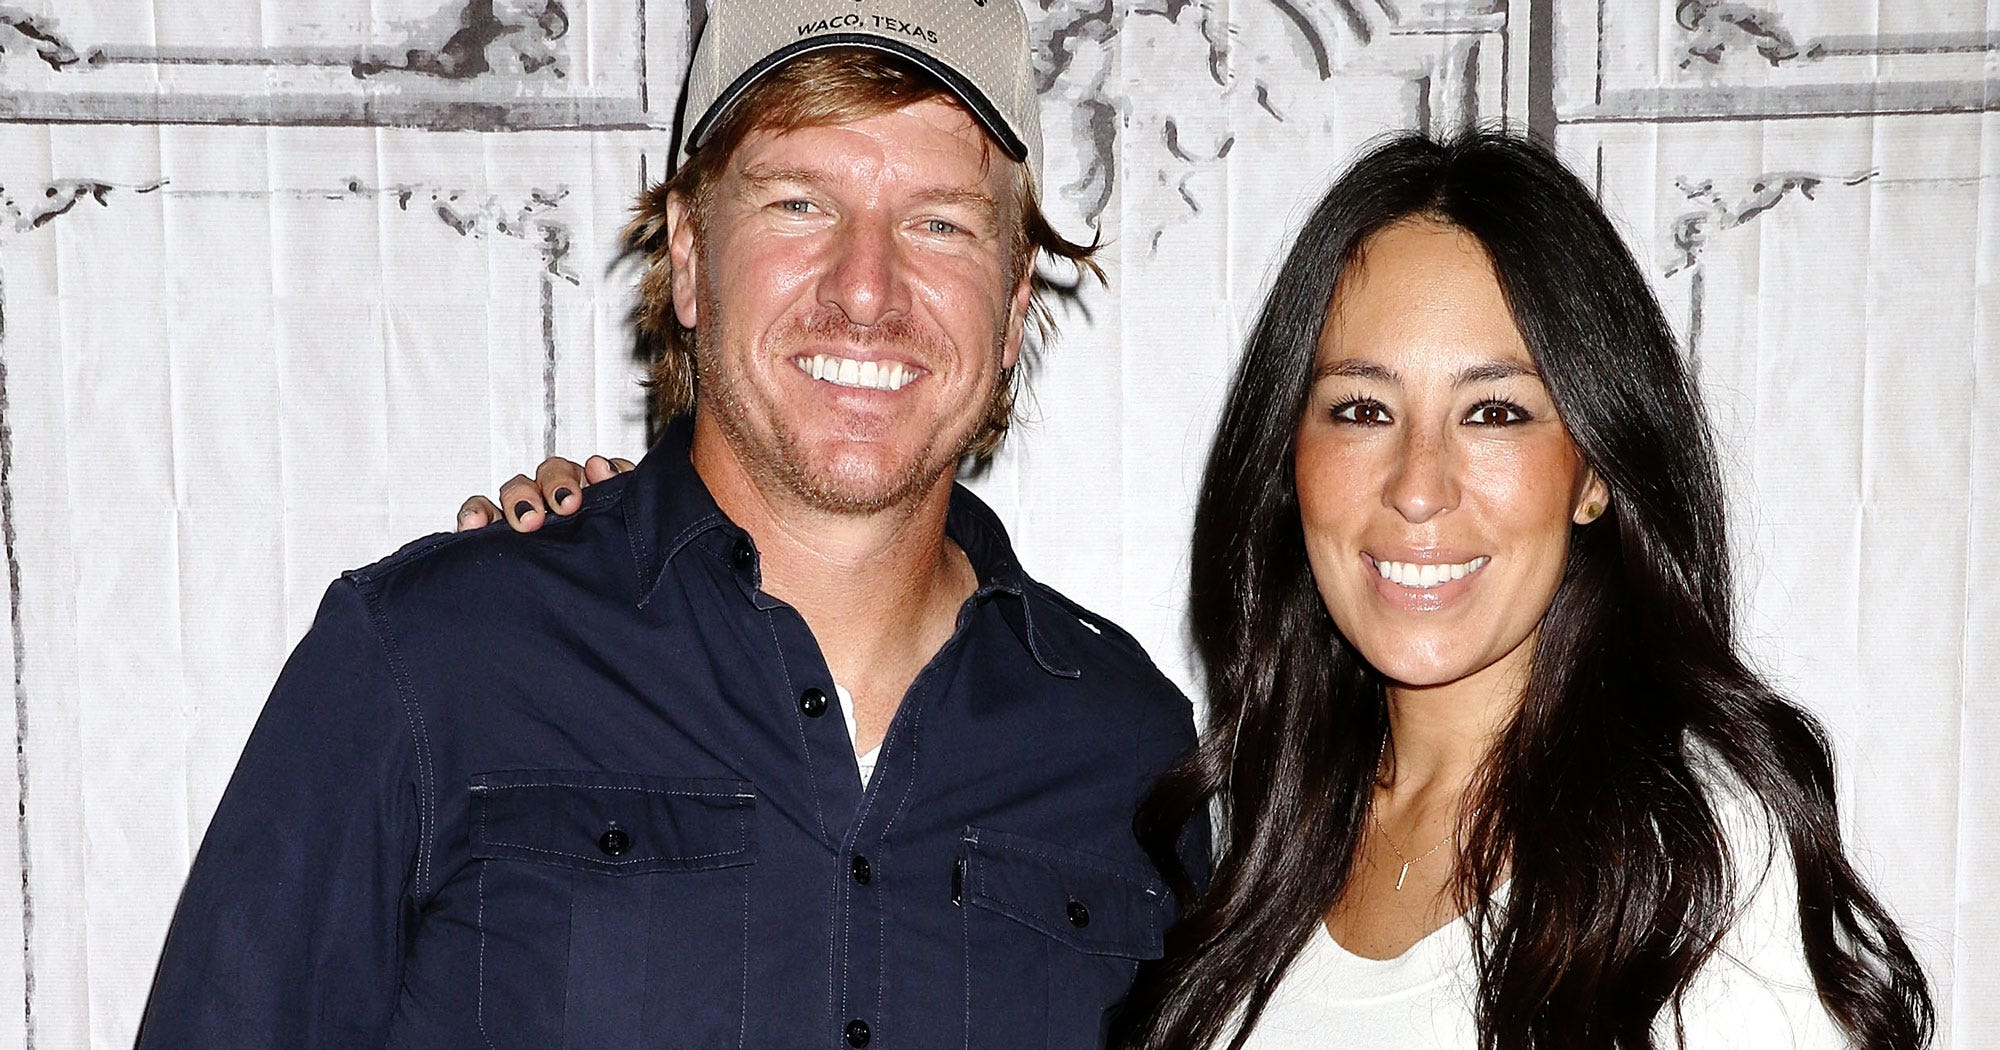 Joanna Gaines Just Gave Fans An Update On Her New Breakfast Restaurant